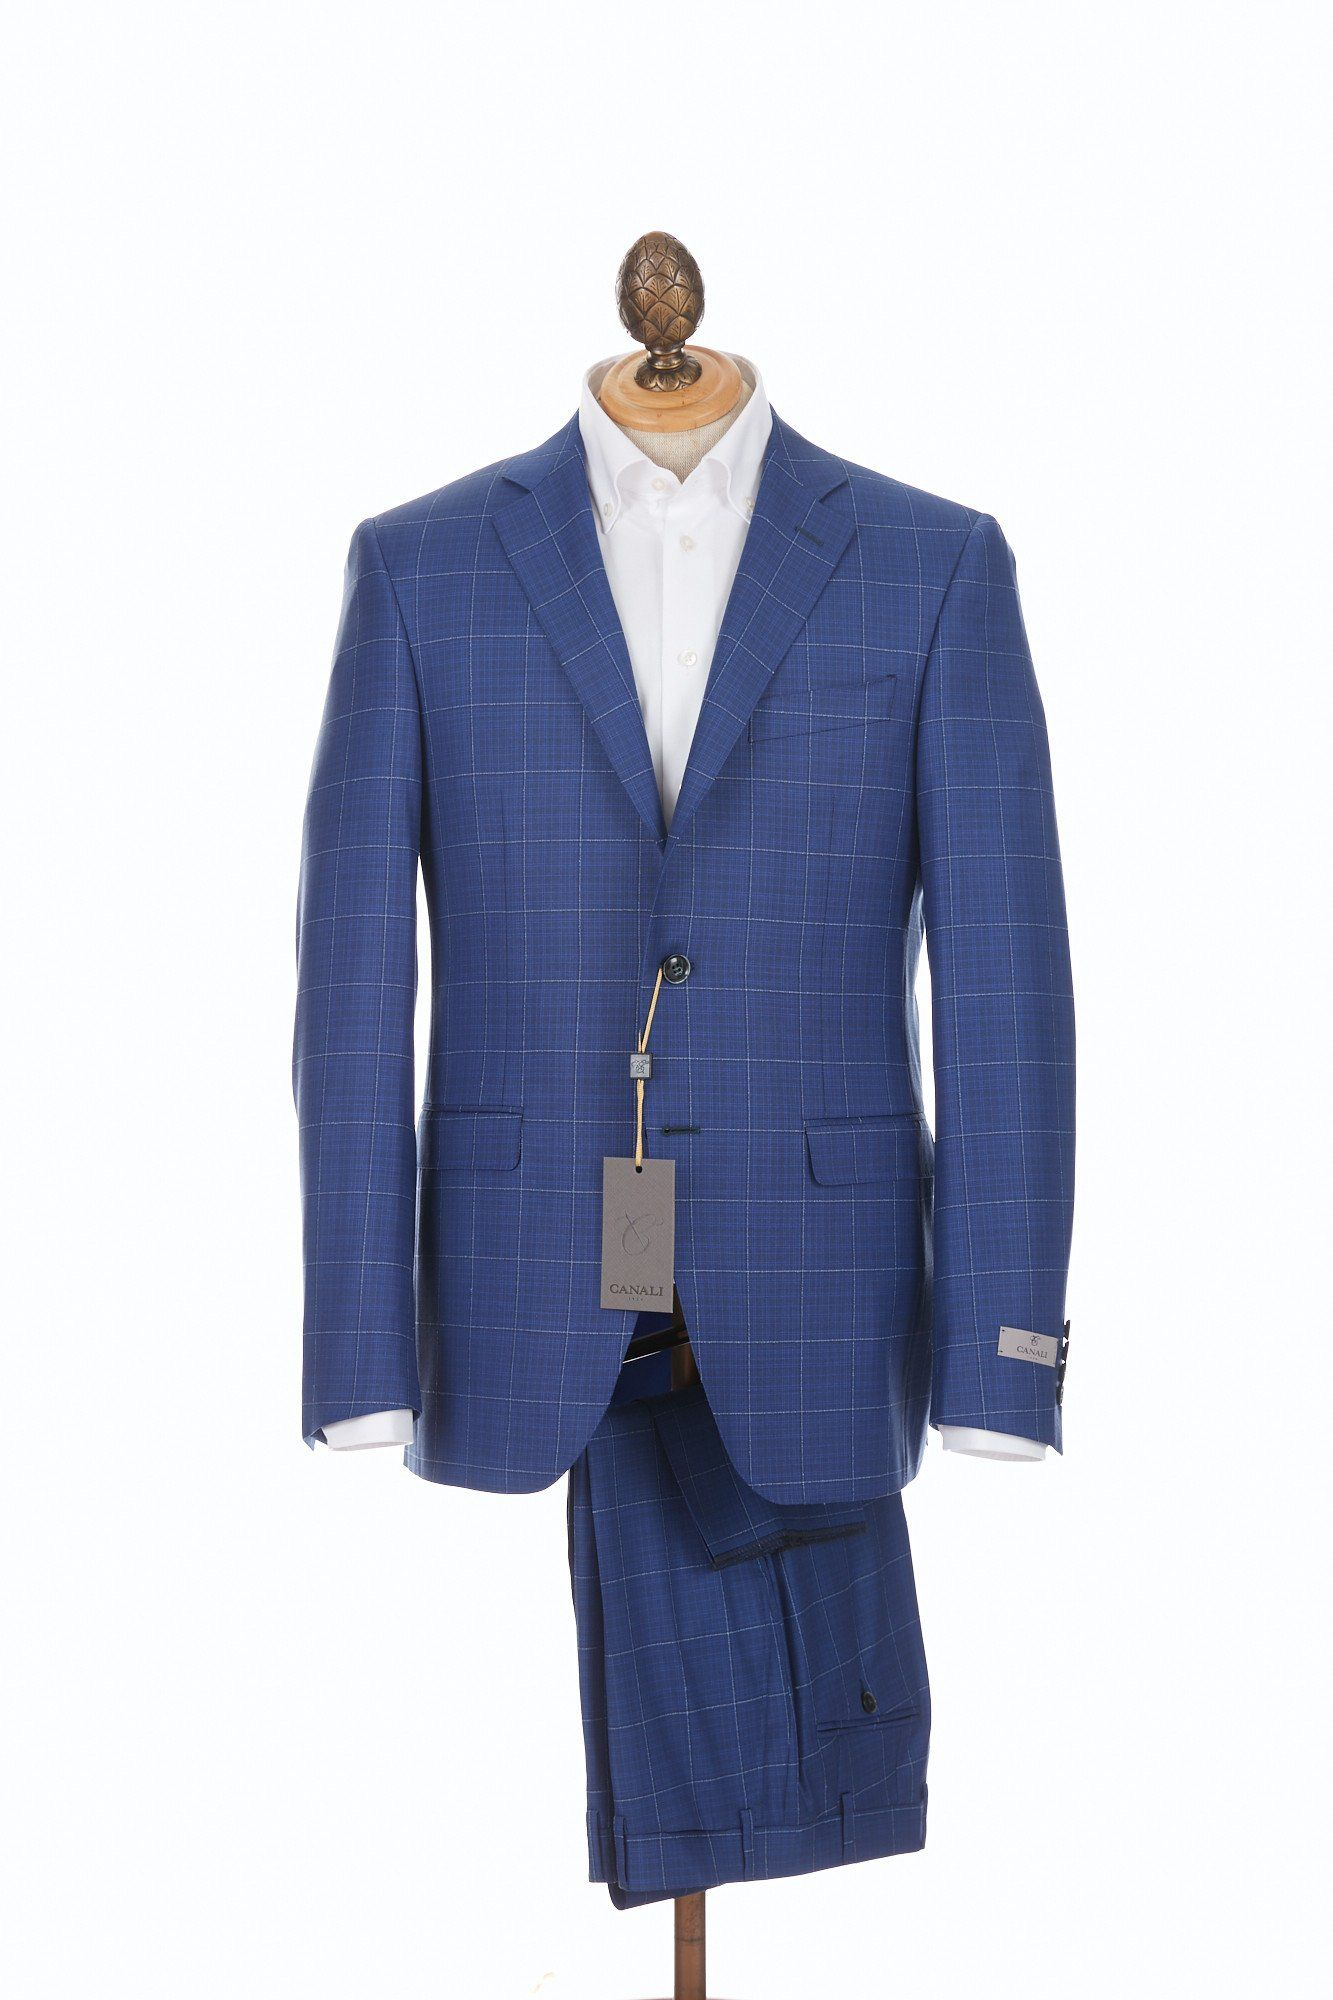 ec81c53db42081 Canali Blue & White Windowpane Suit | 2018 Work Clothes | Windowpane ...